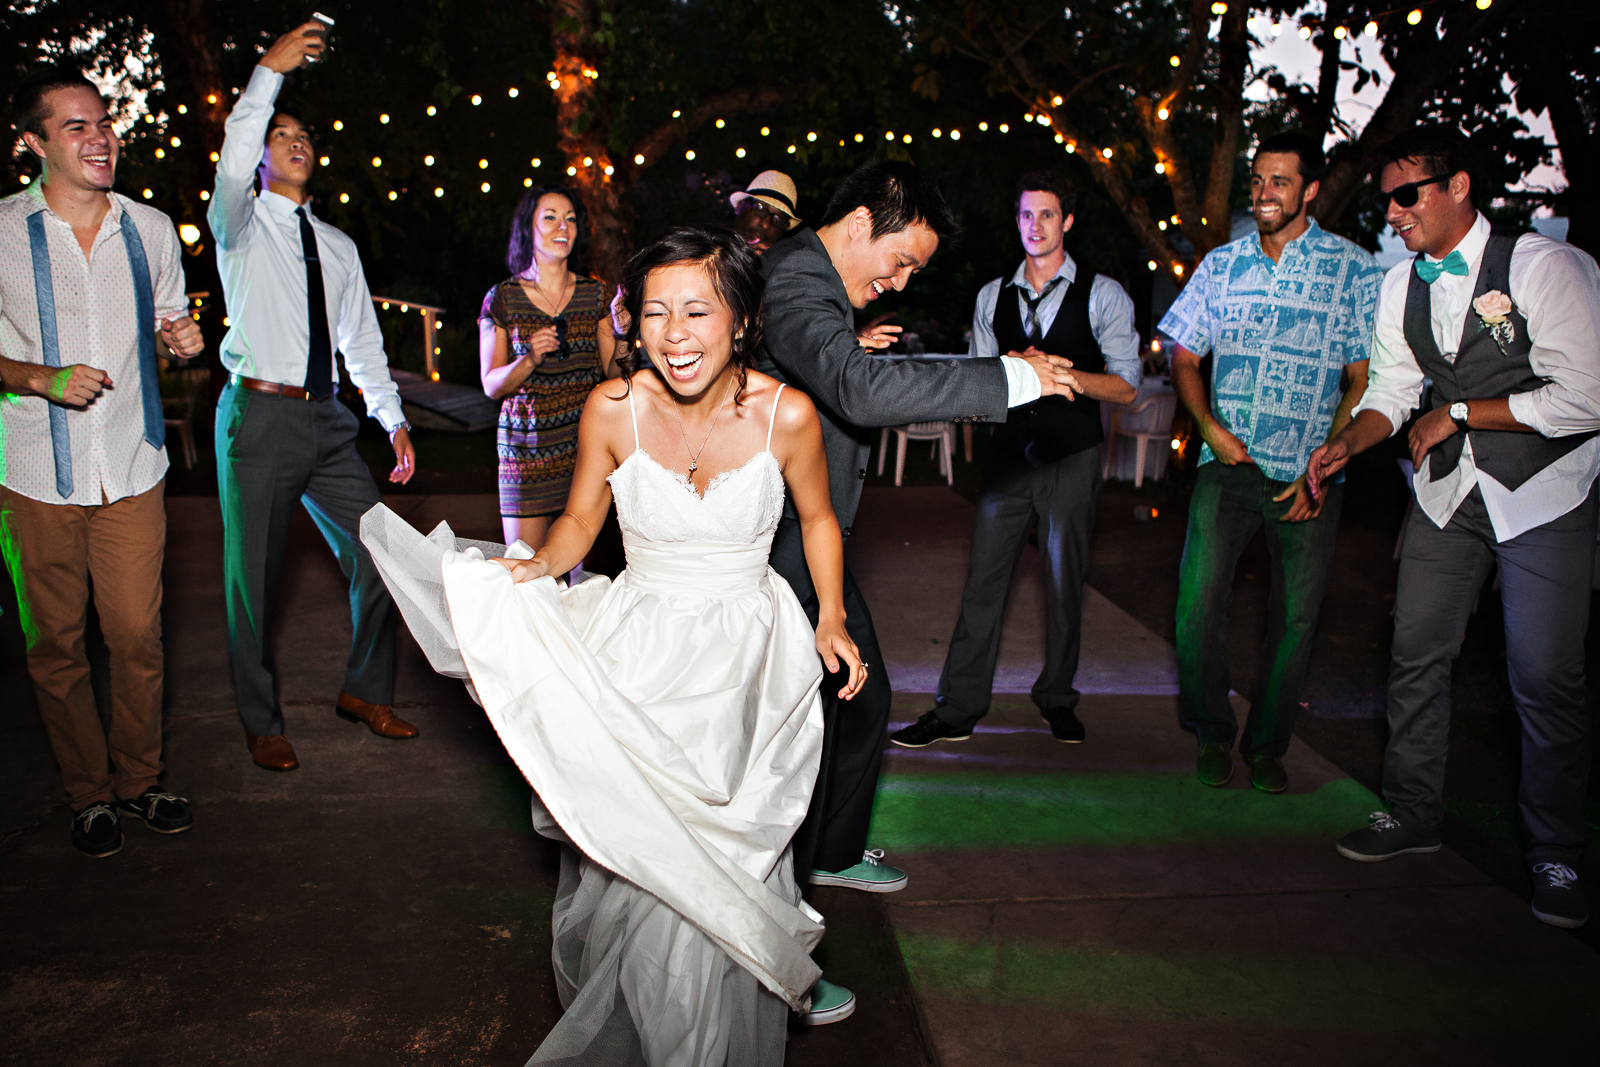 Photo of the Day – You Look Good on the Wedding Reception Dancefloor